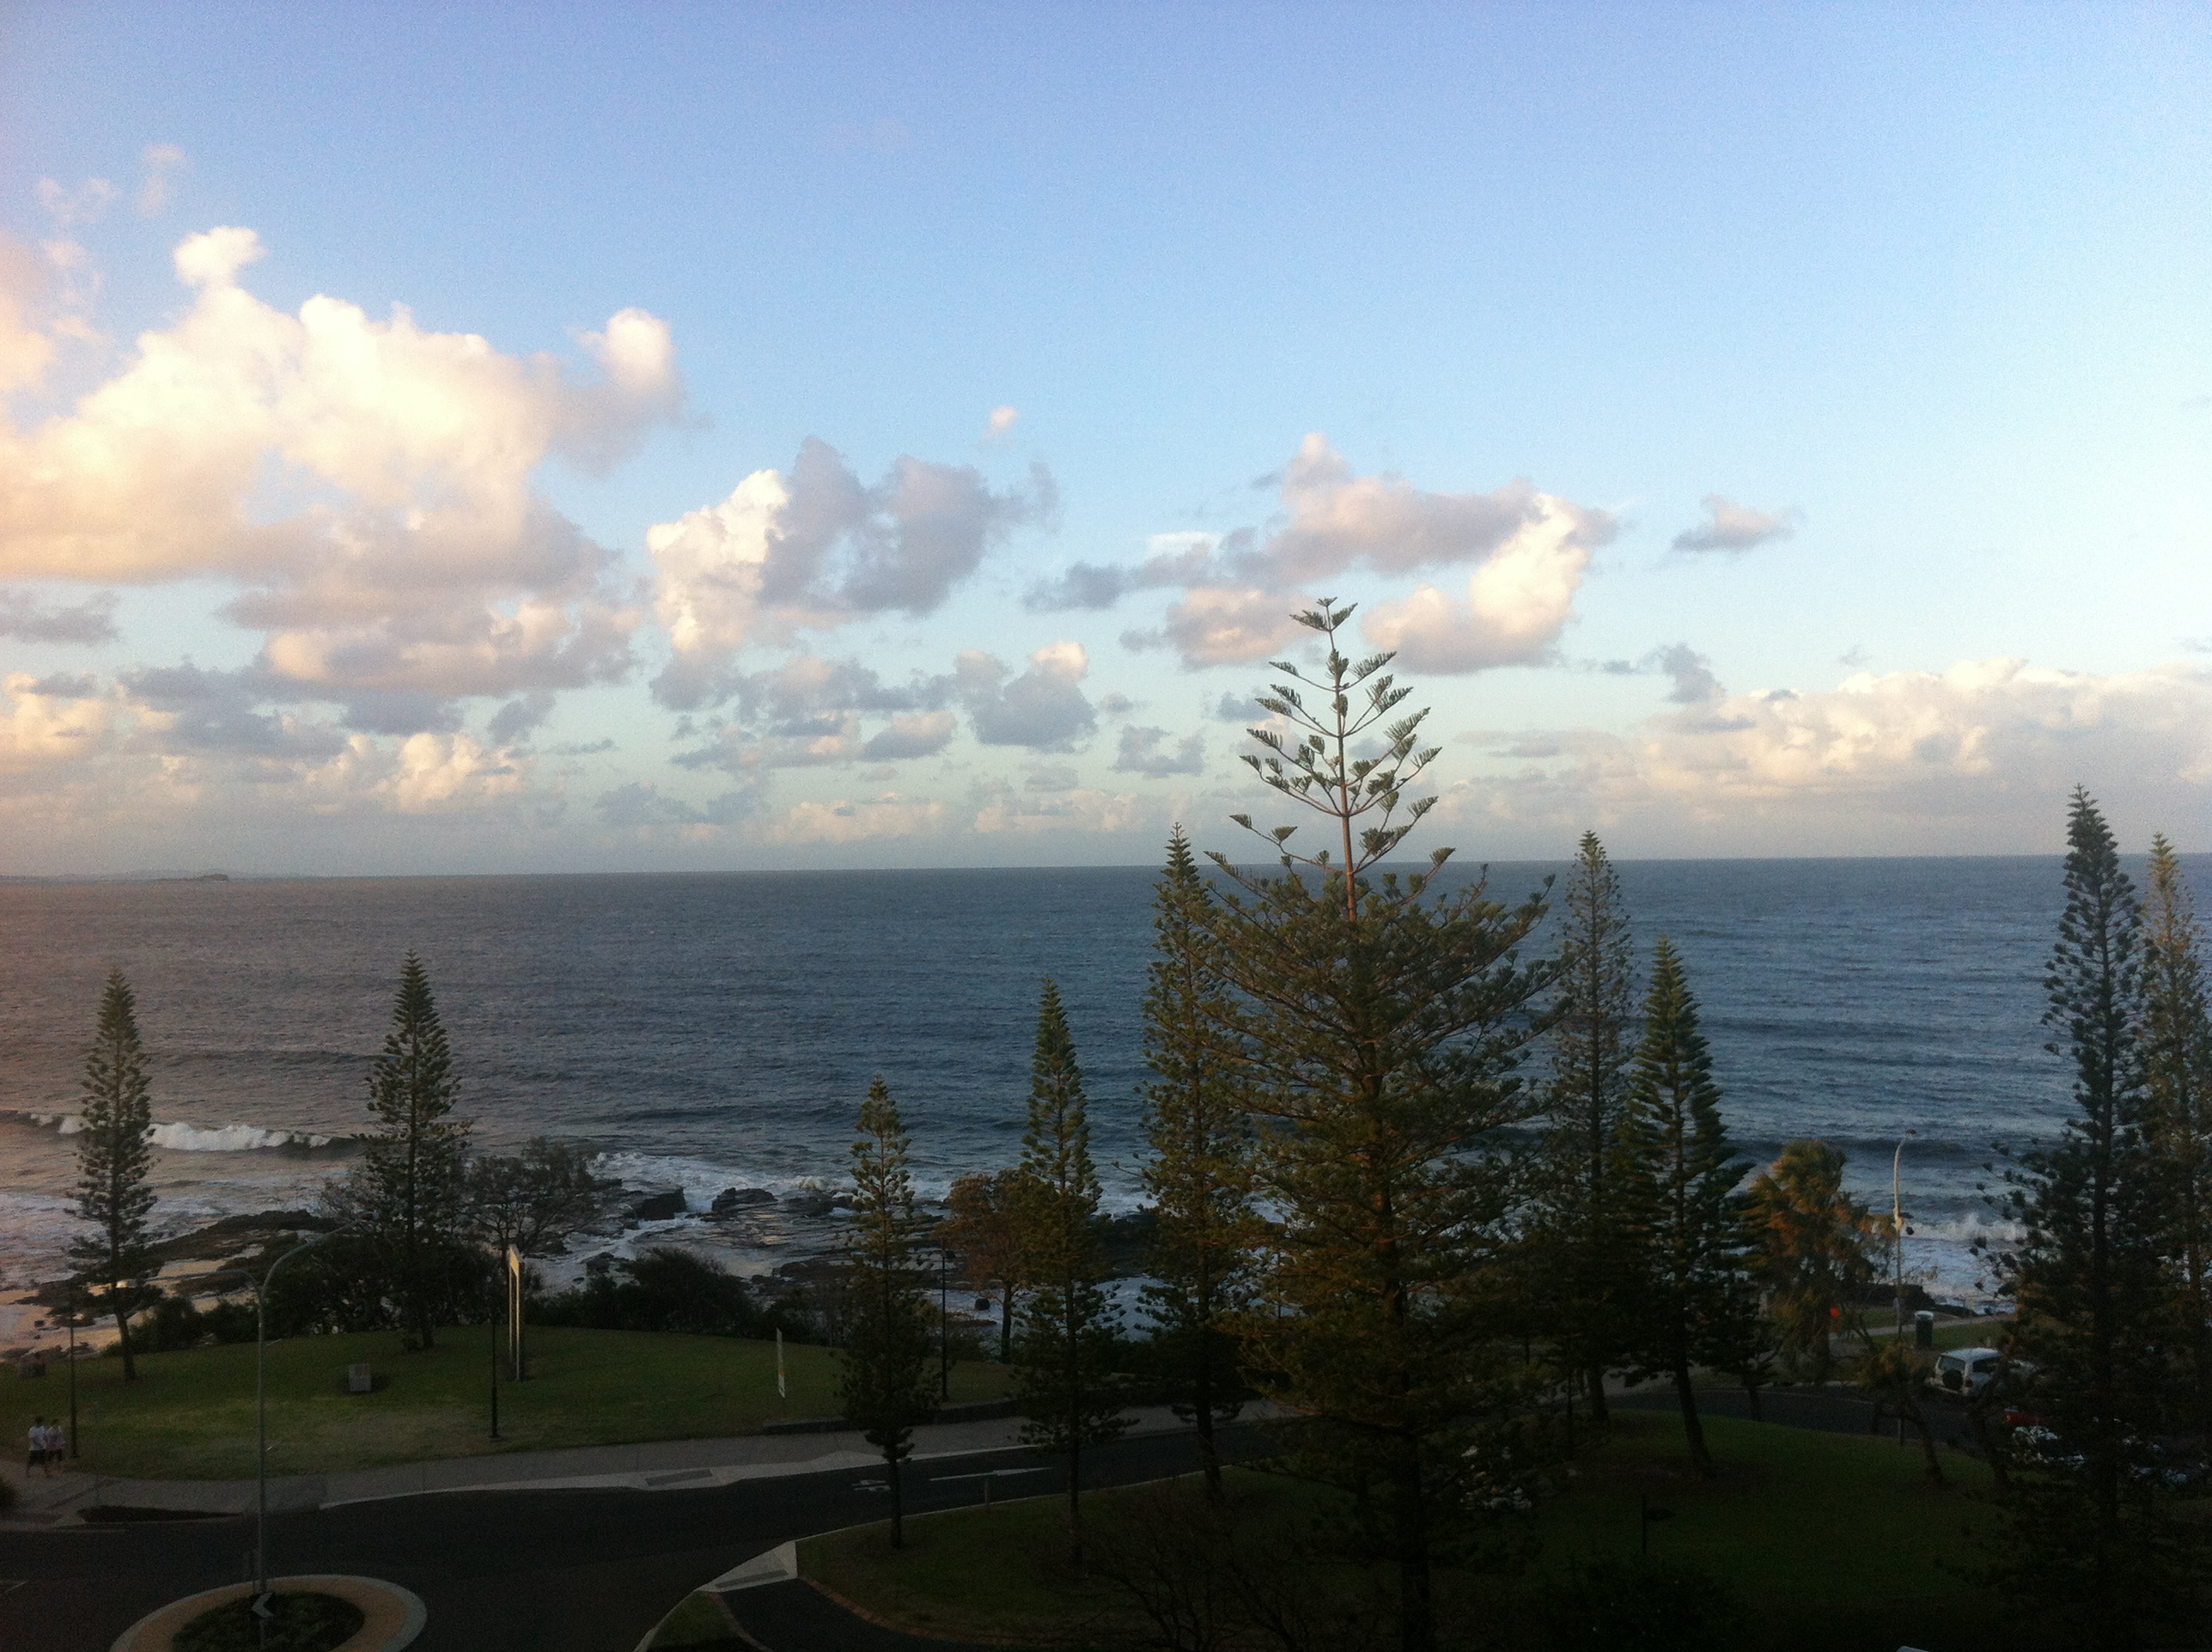 Mooloolaba QLD 2 Days later - All good :)